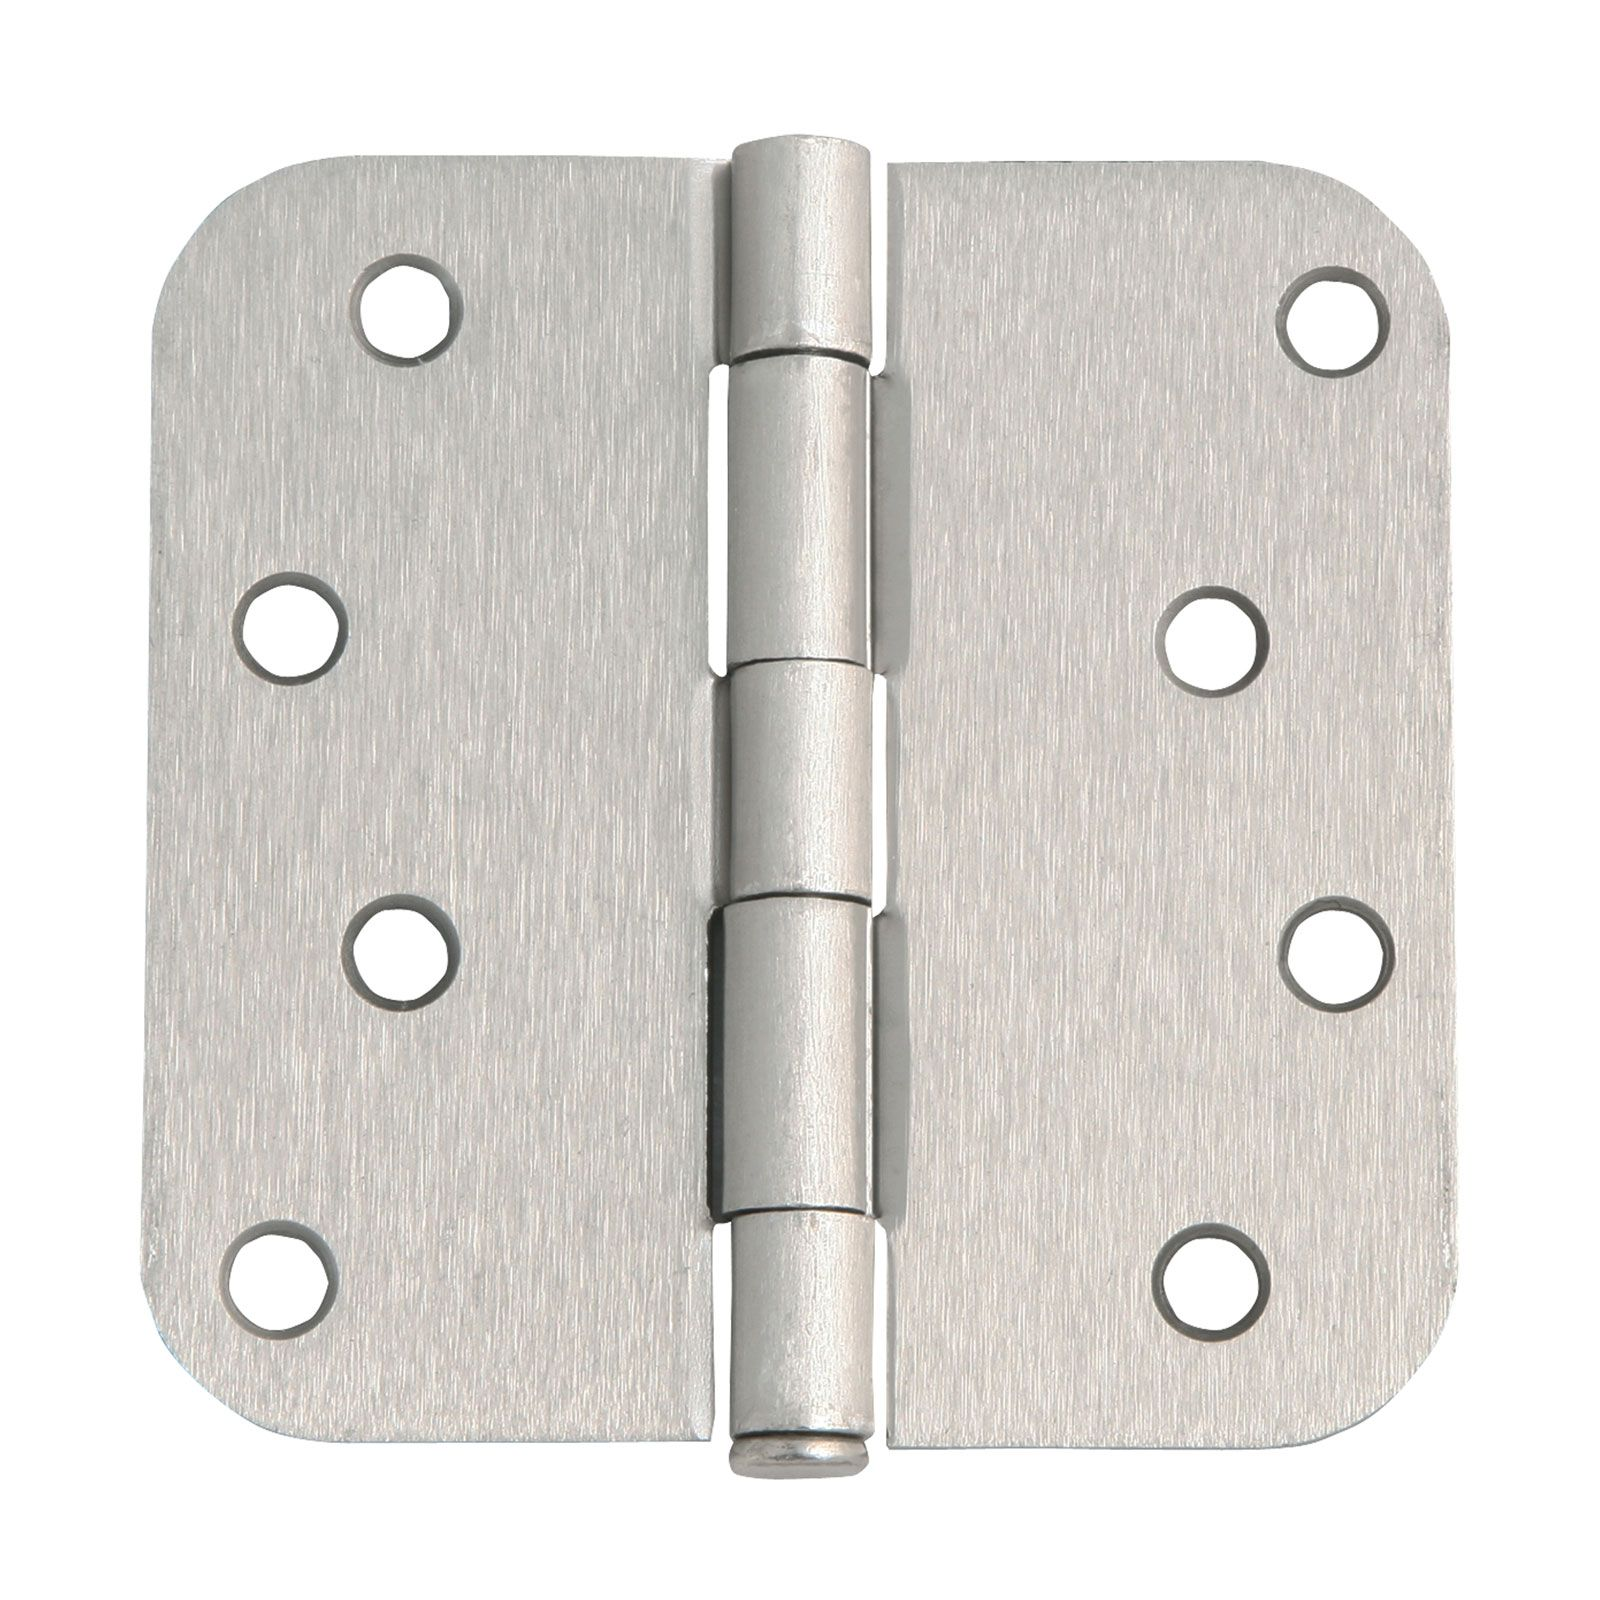 Design House 3 Pack Of 202572 Round Corner Door Hinges 4 X 4 With 5 8 Radius Satin Nickel Discontinued No Longer Available Door Hinges House Design Corner Door